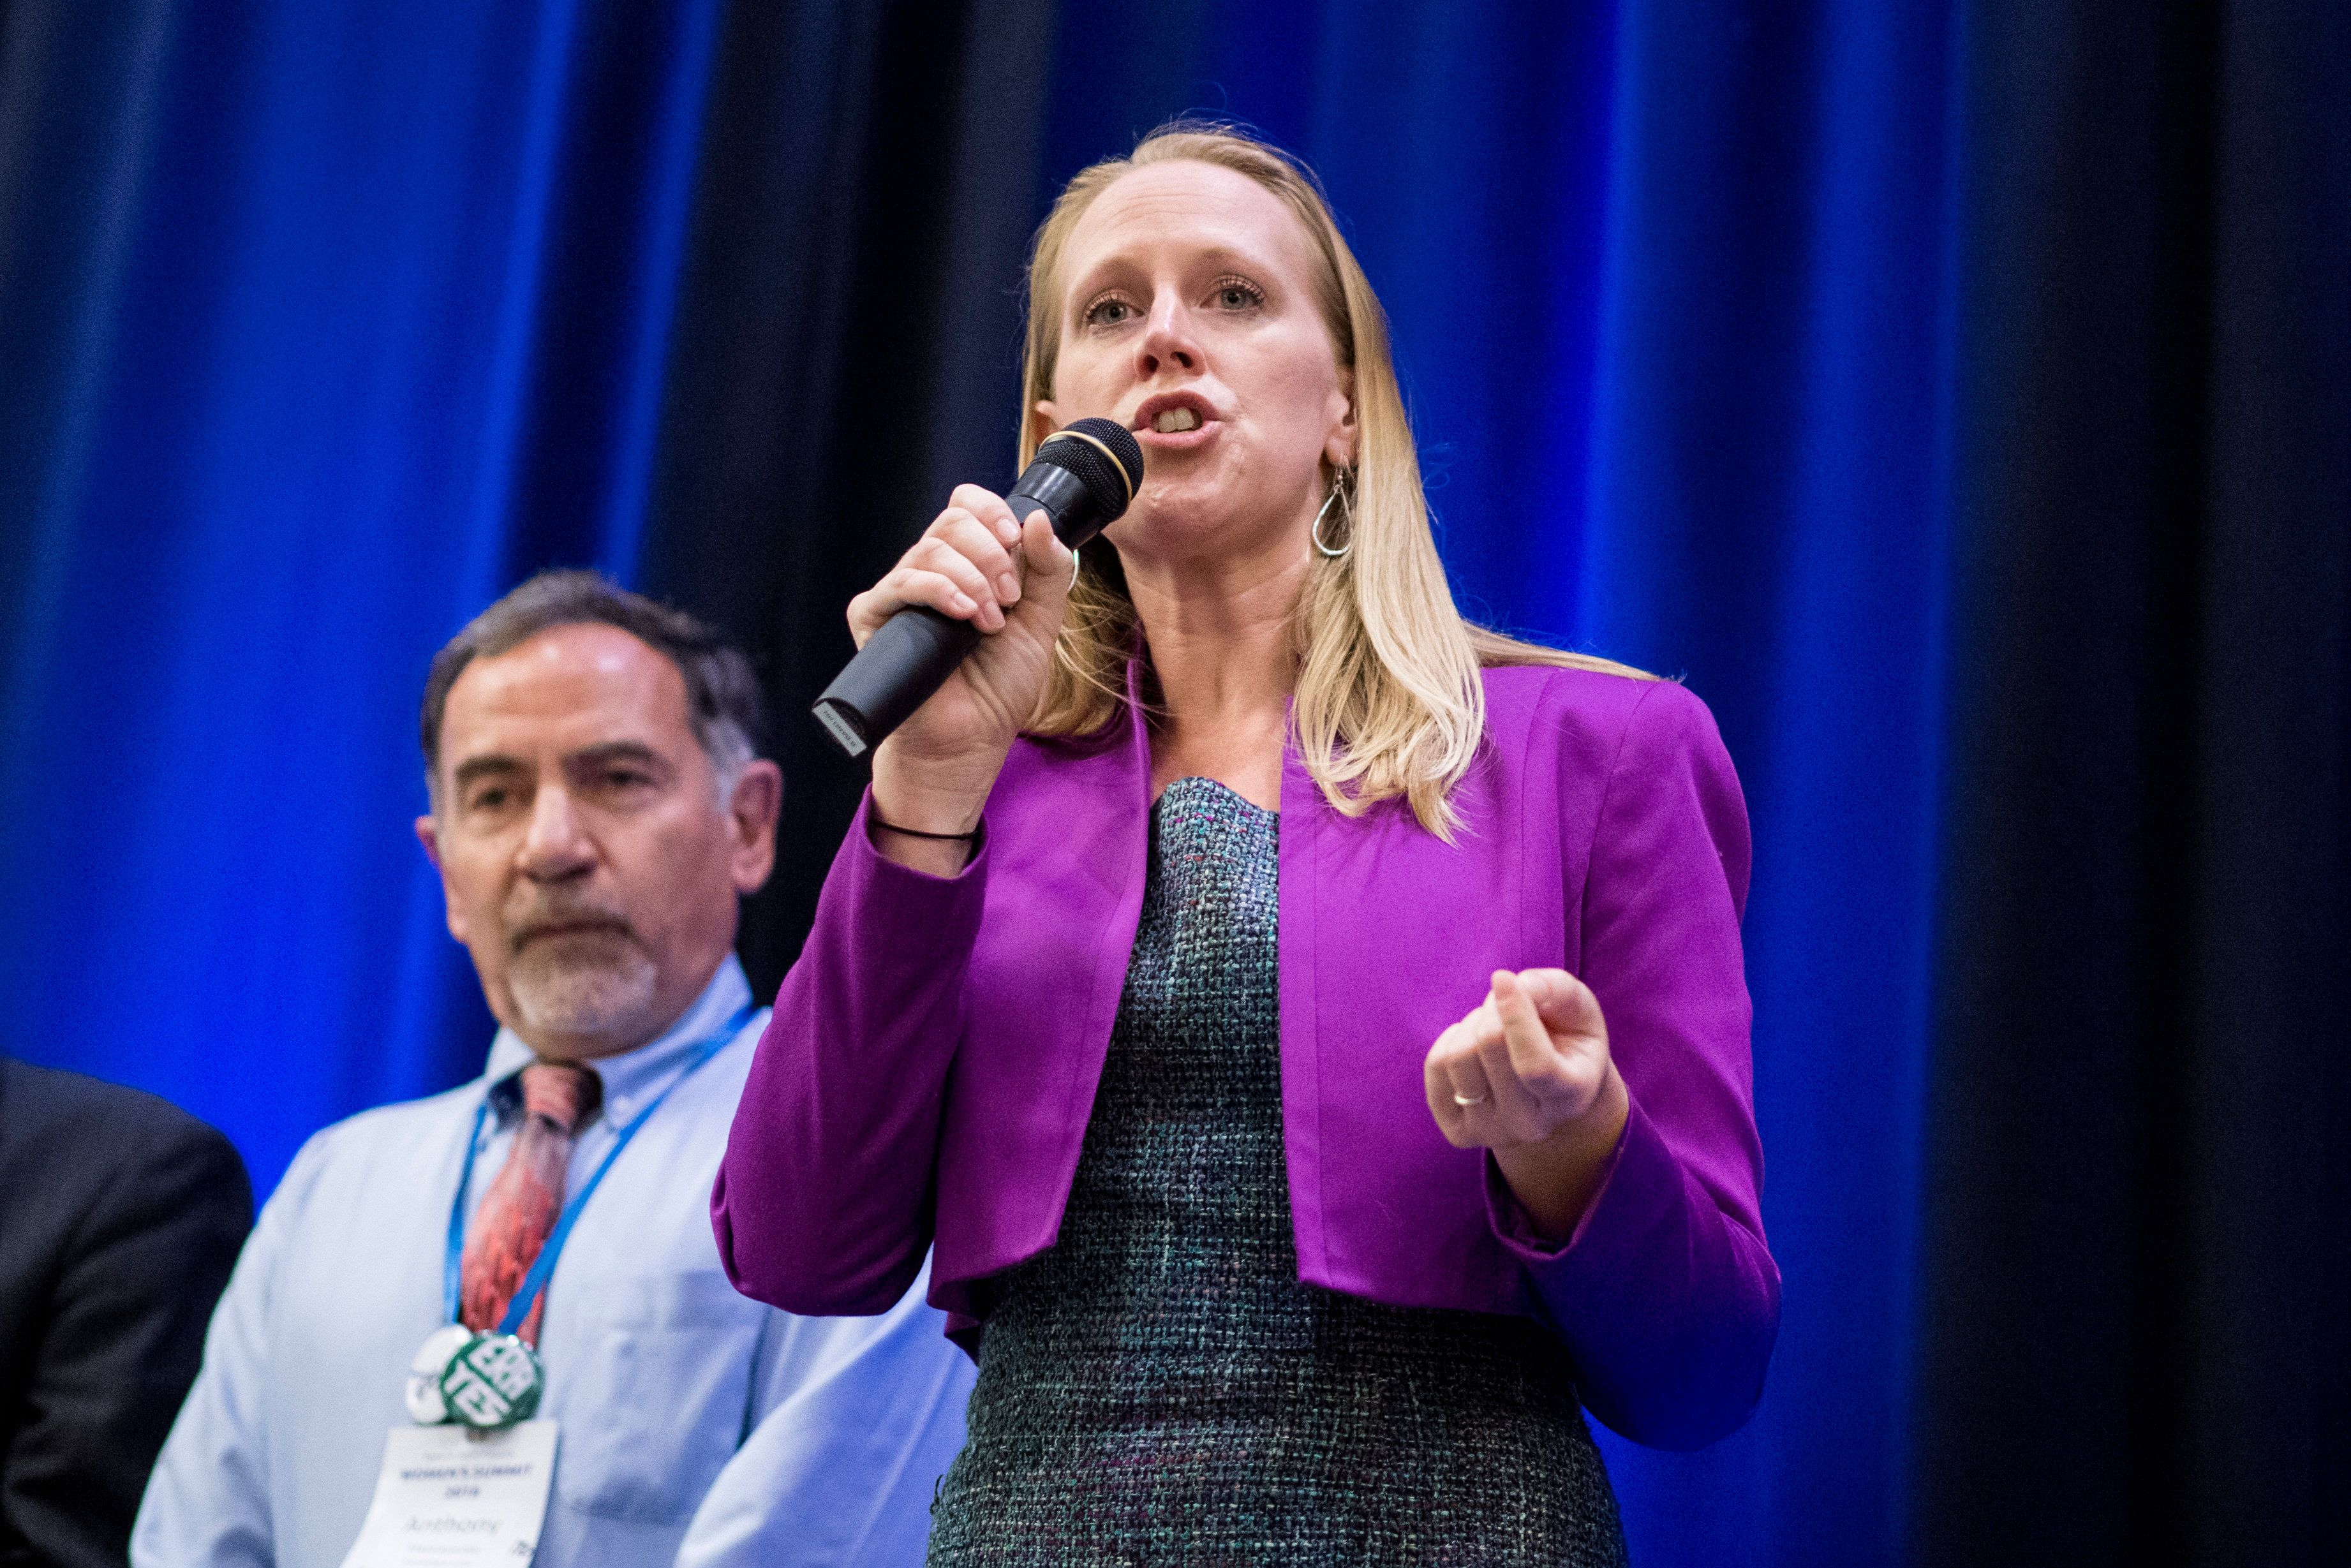 Jennifer Lewis, the Democratic nominee in Virginia's 6th Congressional District, is betting that her brand of rural populism